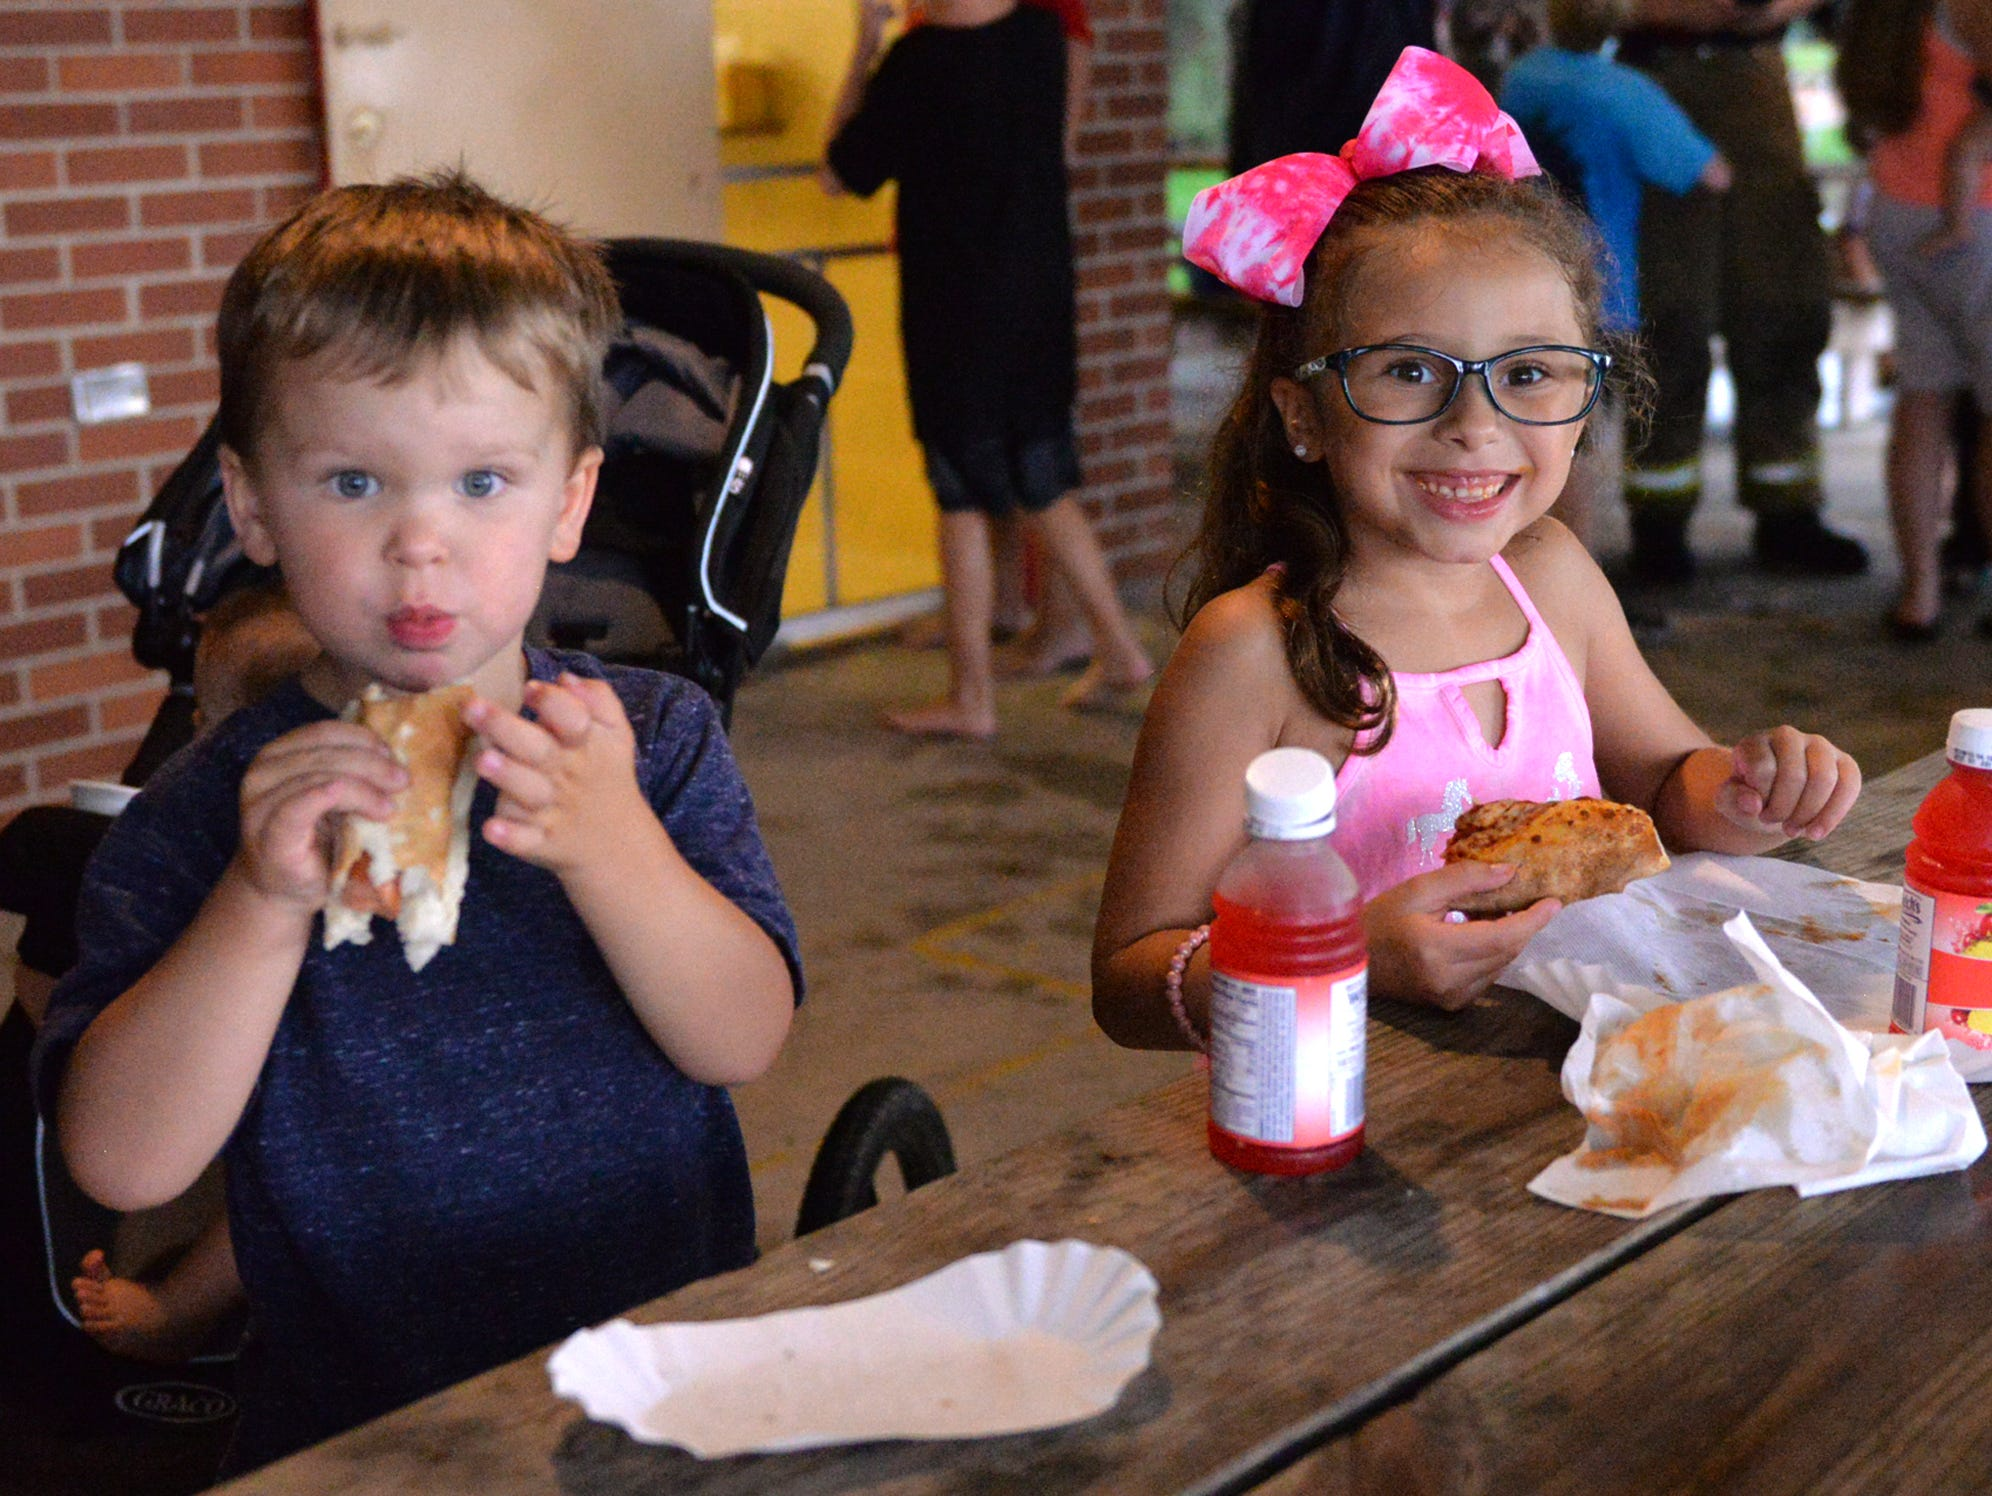 From left, two-year old Wyatt Yoder and Layna Mejias, 2, enjoy dinner at Cleona Borough Park during Cleona Borough Police Department's National Night Out held on Tuesday evening, August 7, 2018.